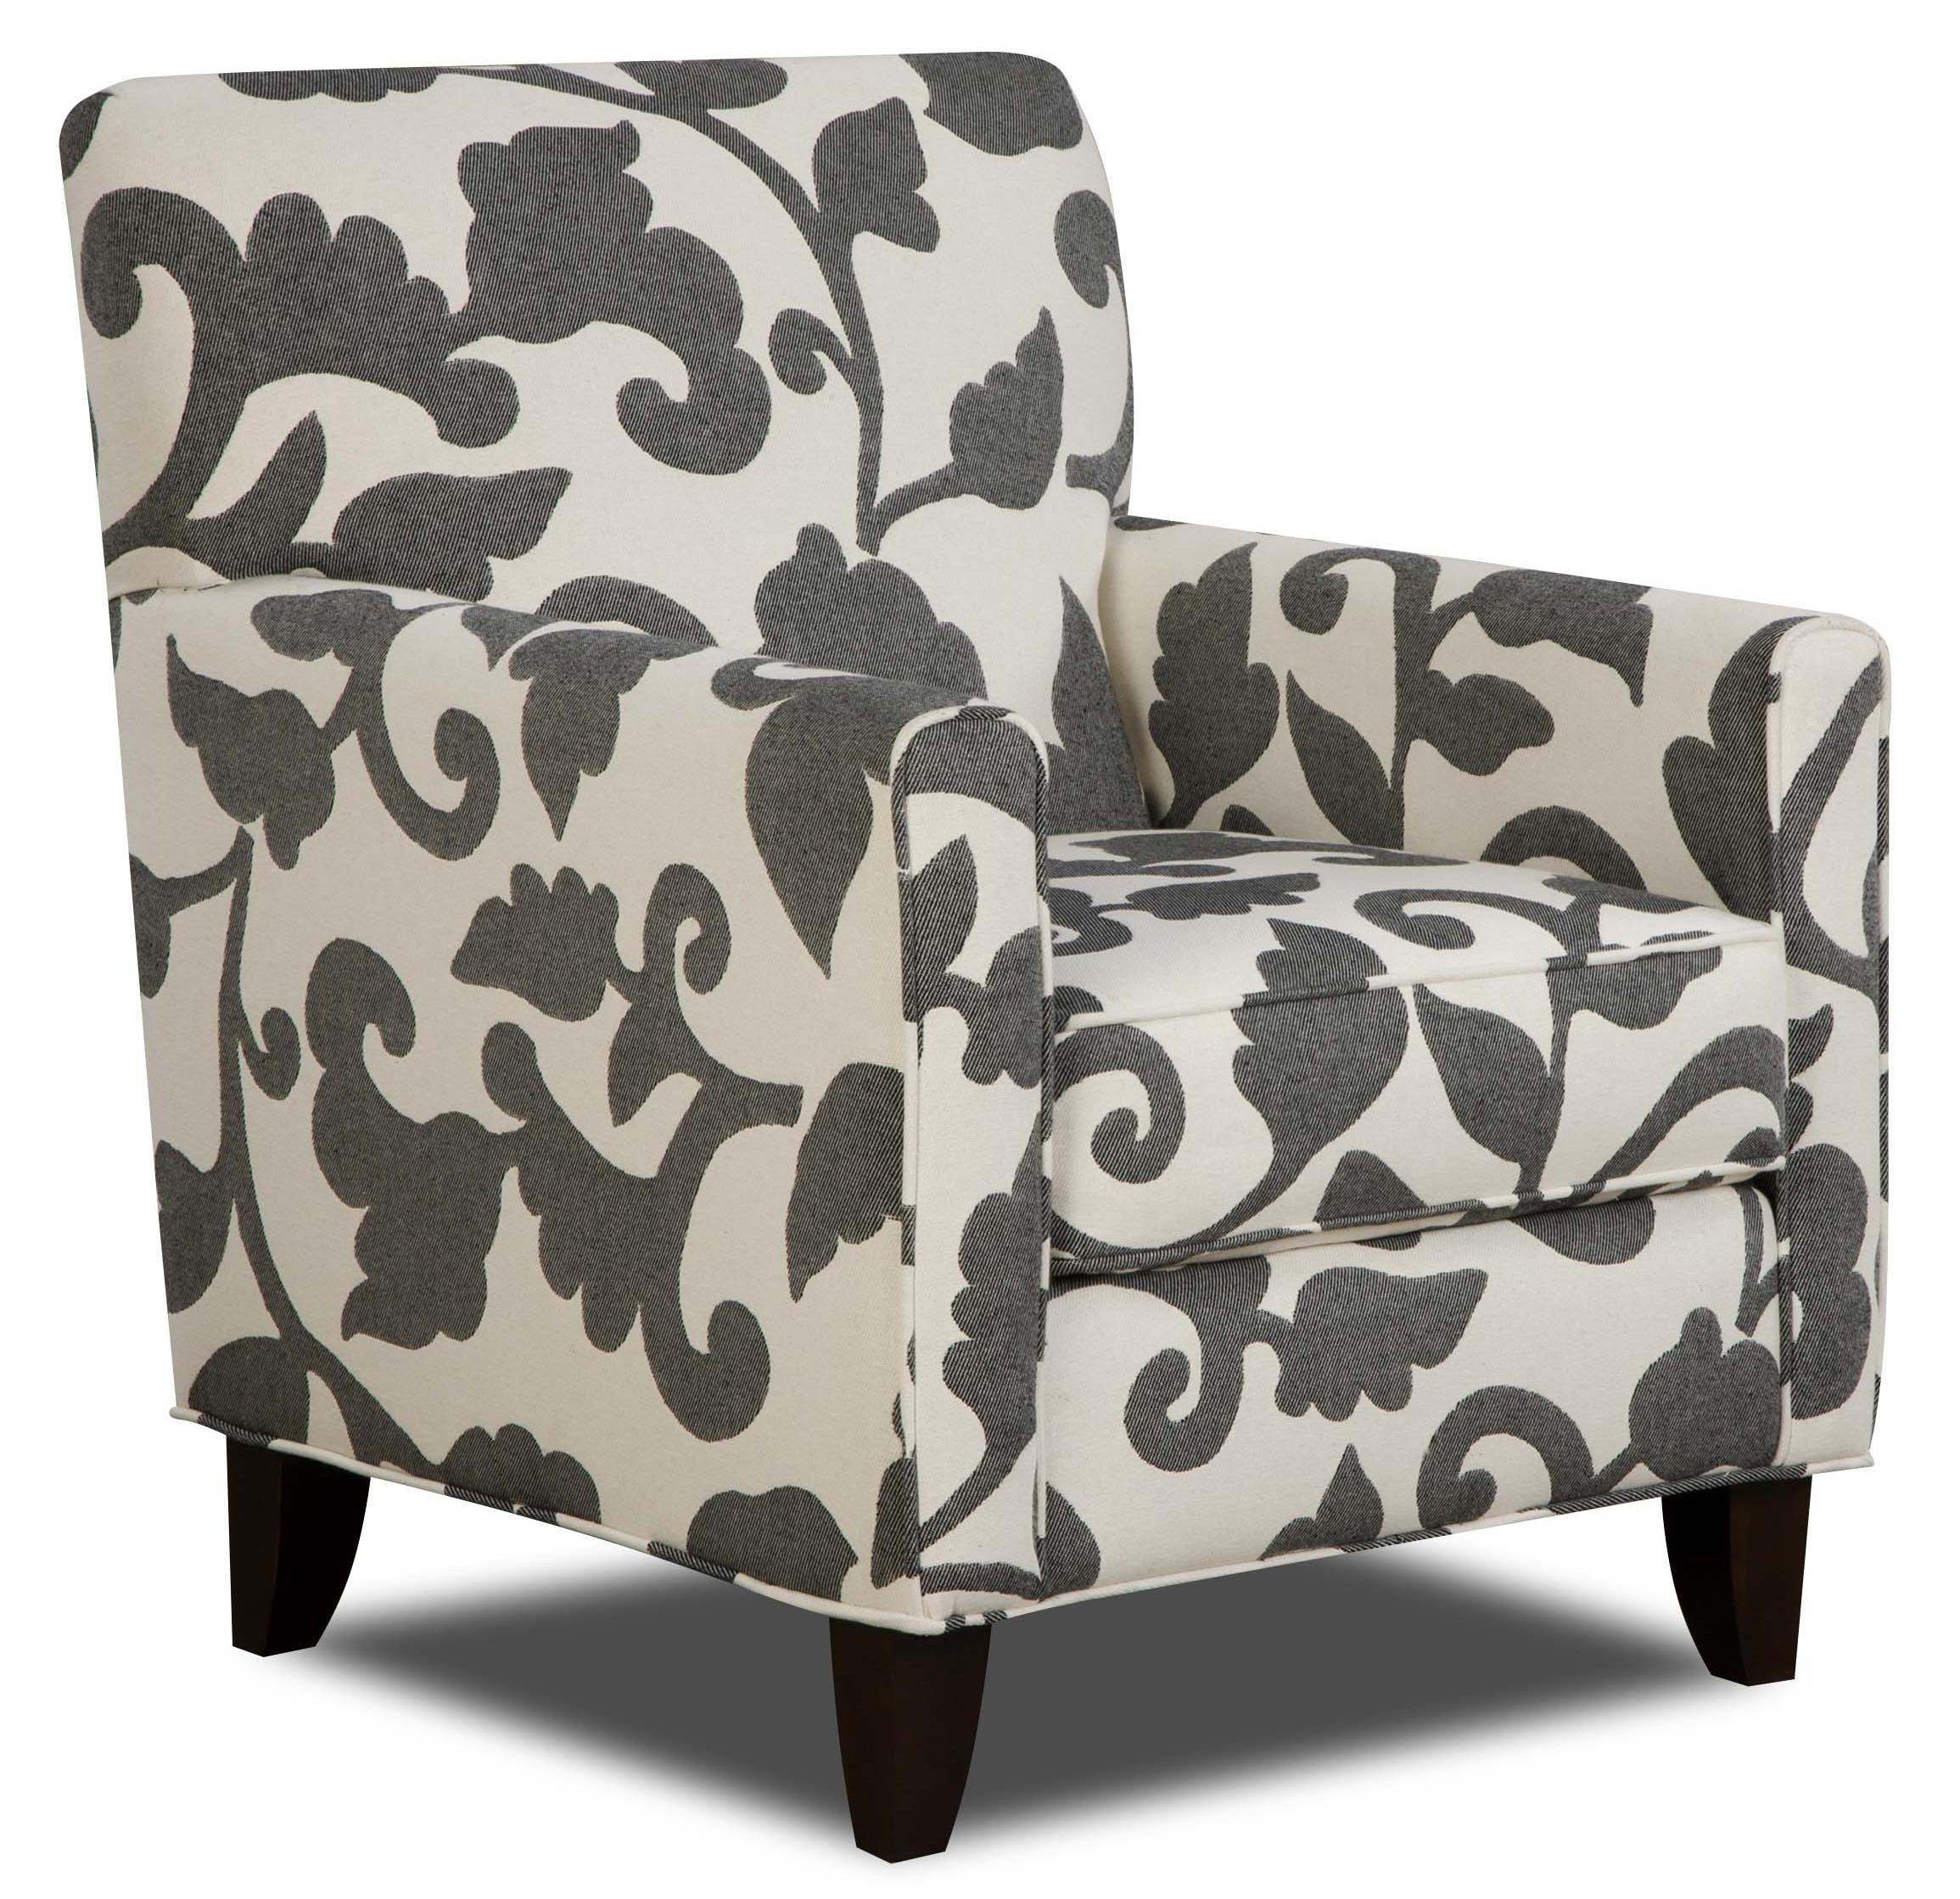 Fusion Furniture 702 - Marcie Onyx Accent Chair - Item Number: 702 MO